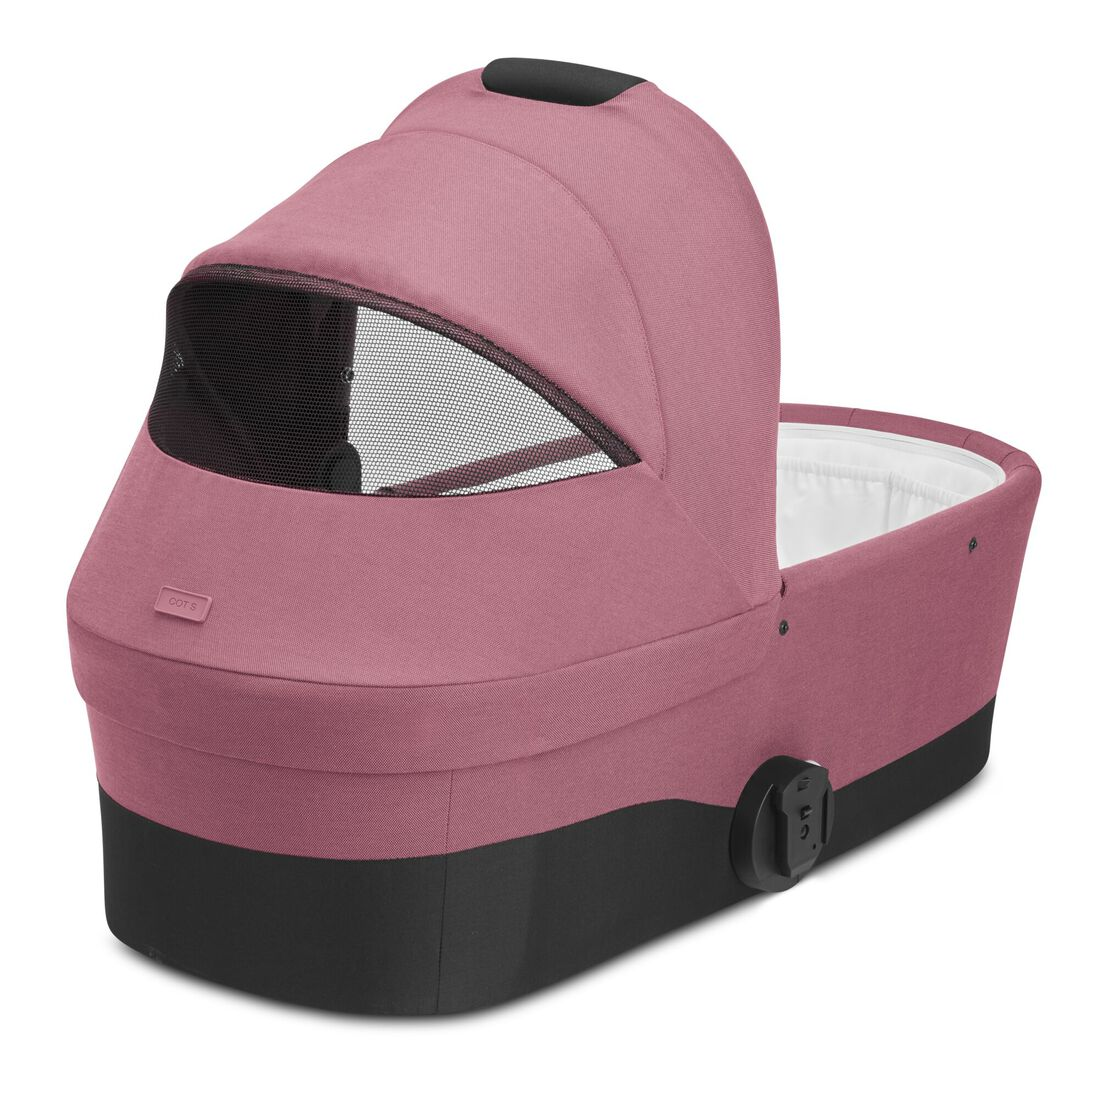 CYBEX Cot S - Magnolia Pink in Magnolia Pink large image number 3